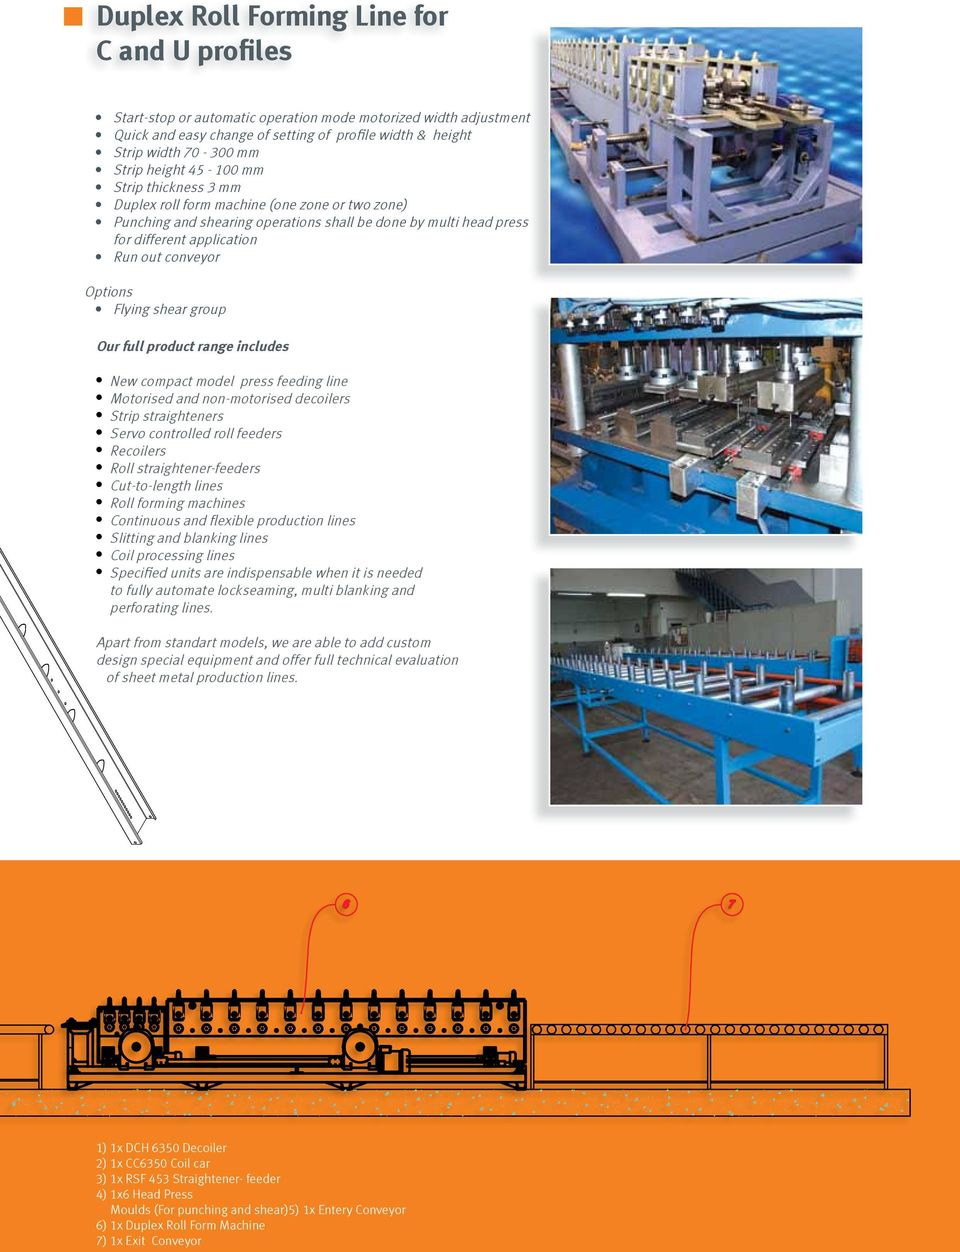 shearing operations shall be done by six multi head press head for different pres in different application areas Run uot out conveyor Options: Shearing Flying shear Group group Our full product range